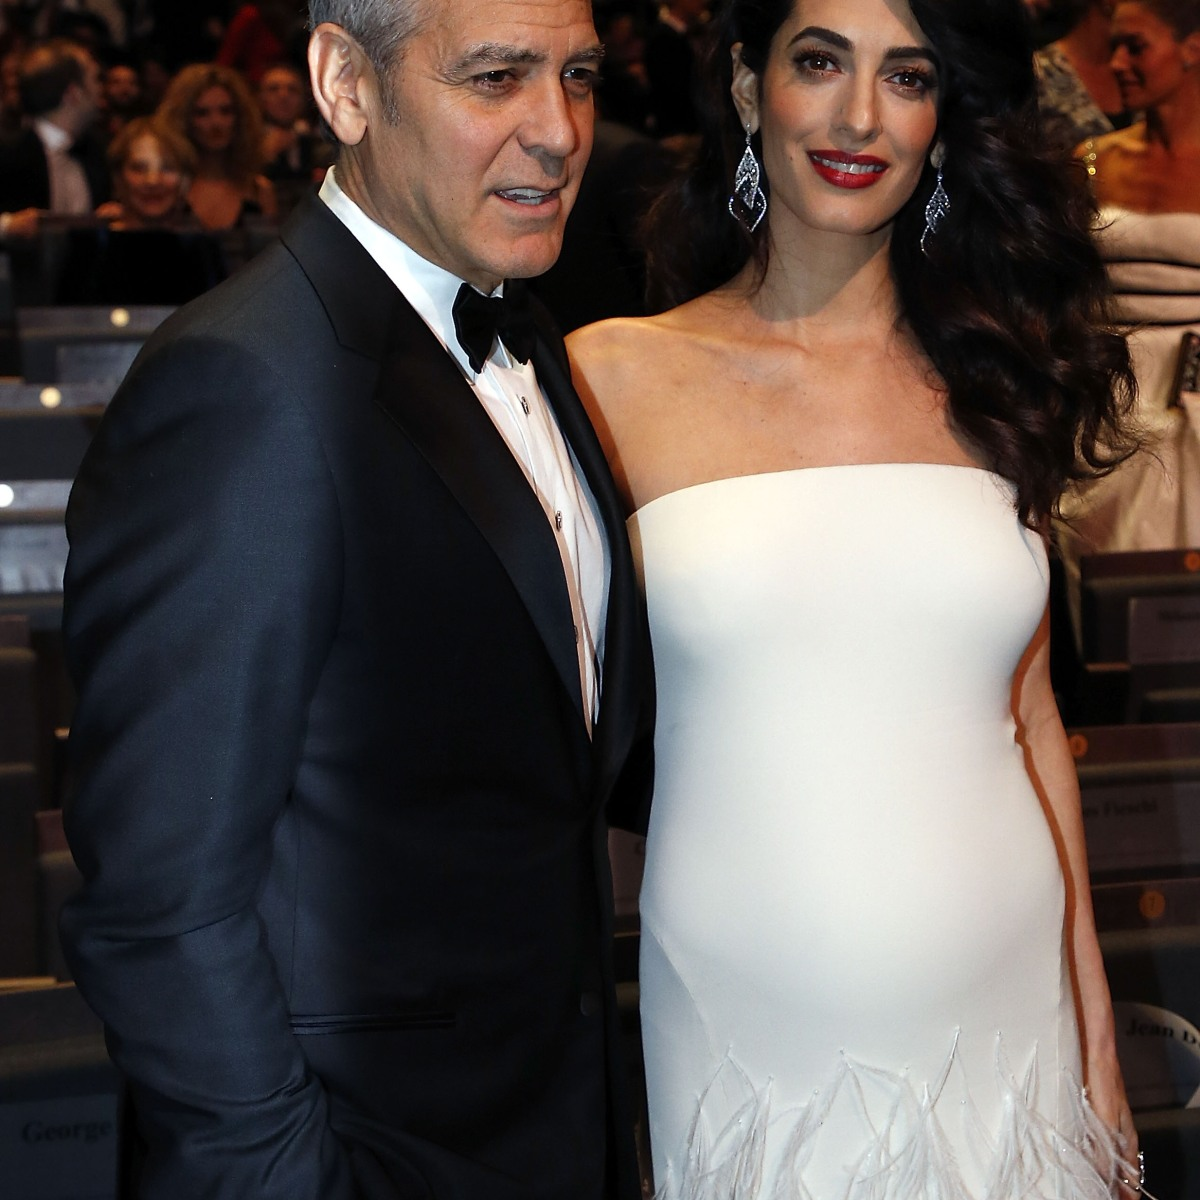 See All the Pictures of Pregnant Amal Clooney's Baby Bump